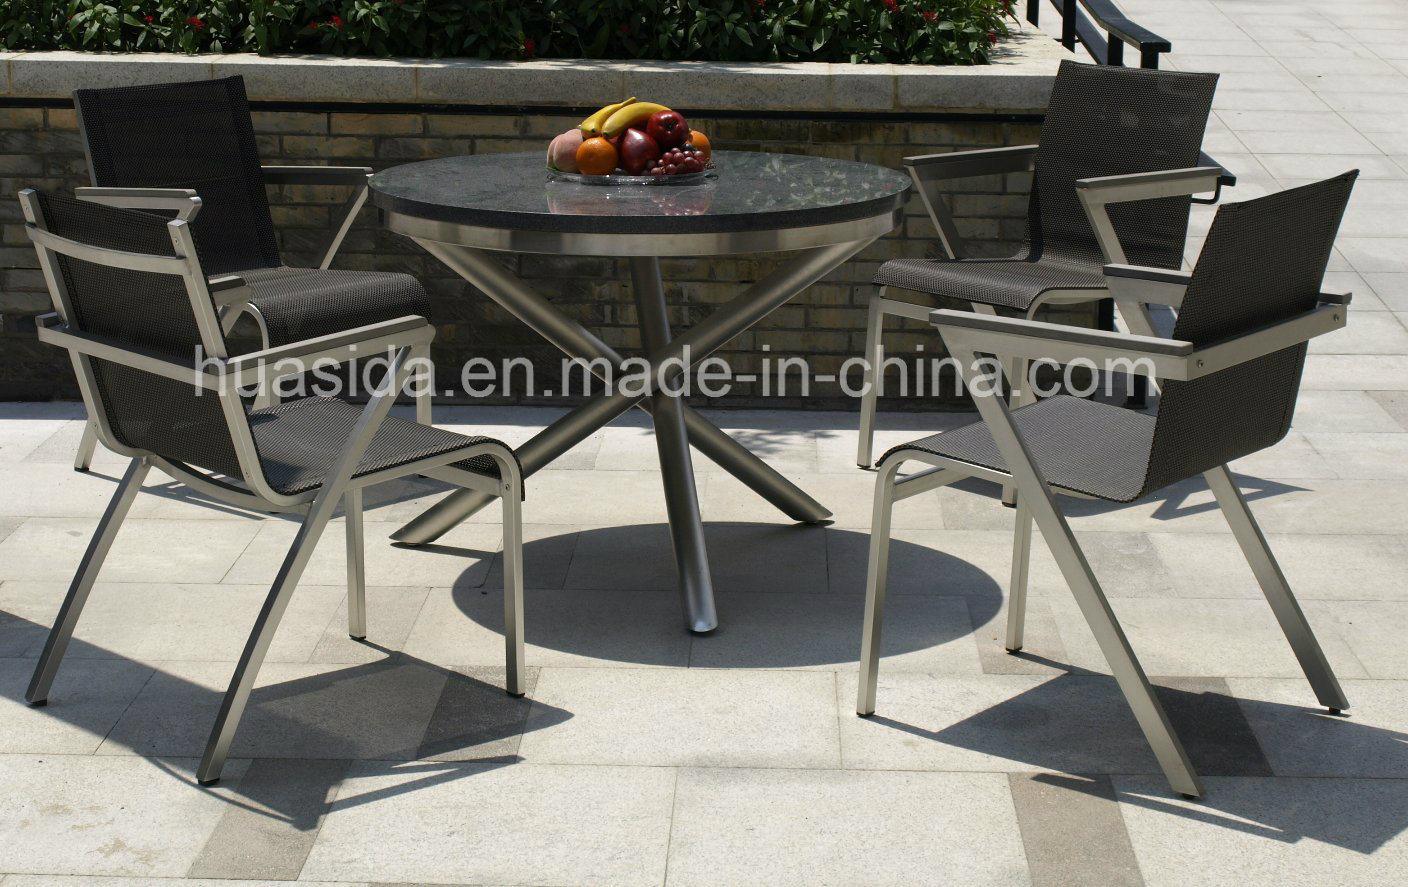 Rustless 304 Stainless Steel Garden Round Marble Table Set